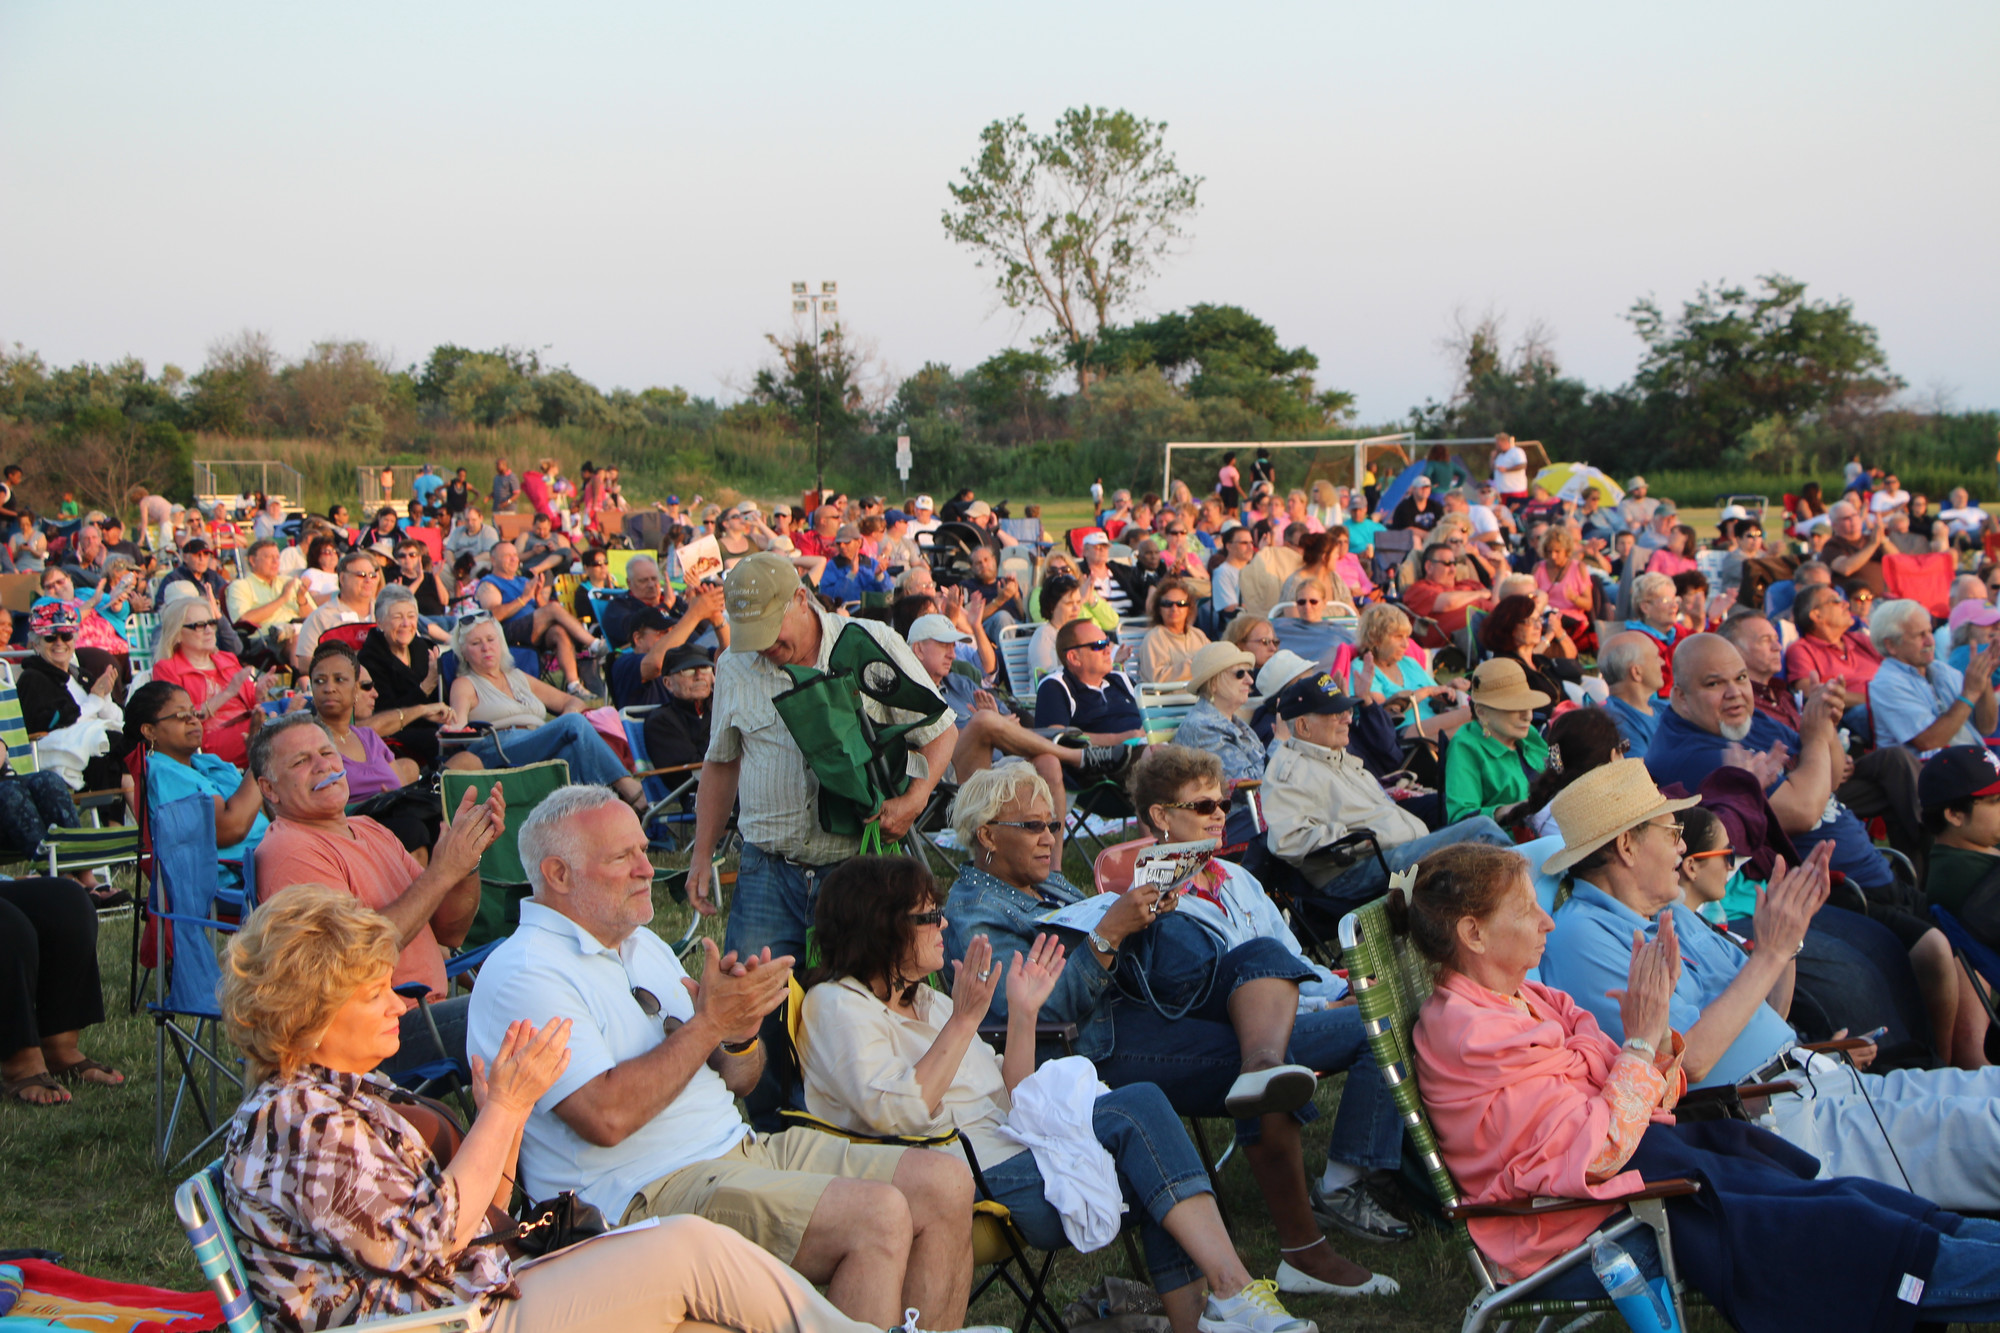 Baldwin Park was packed with people last Saturday, who enjoyed the Johnny Cash Tribute Band 'Walking the Line' during Baldwin Day 2014.